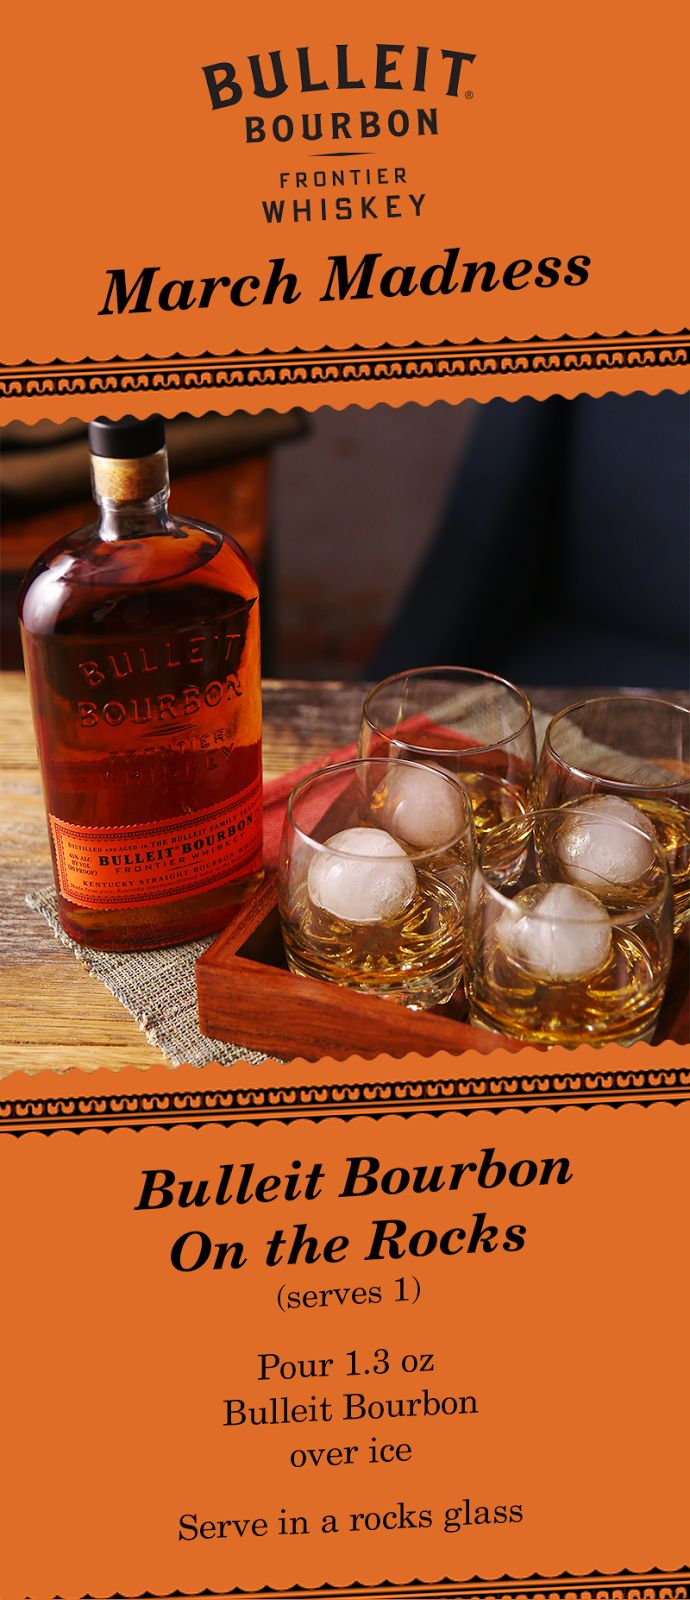 Ring in the Final Four weekend with a group serve of Bulleit Bourbon on the rocks.  This classic whiskey is the perfect drinks for friends to enjoy while watching basketball.  All it takes is a bottle of Bulleit Bourbon and some ice, so you can spend more time  watching the game. No matter which team you're rooting for, watch the drama unfold  in Phoenix with a little taste of Kentucky.